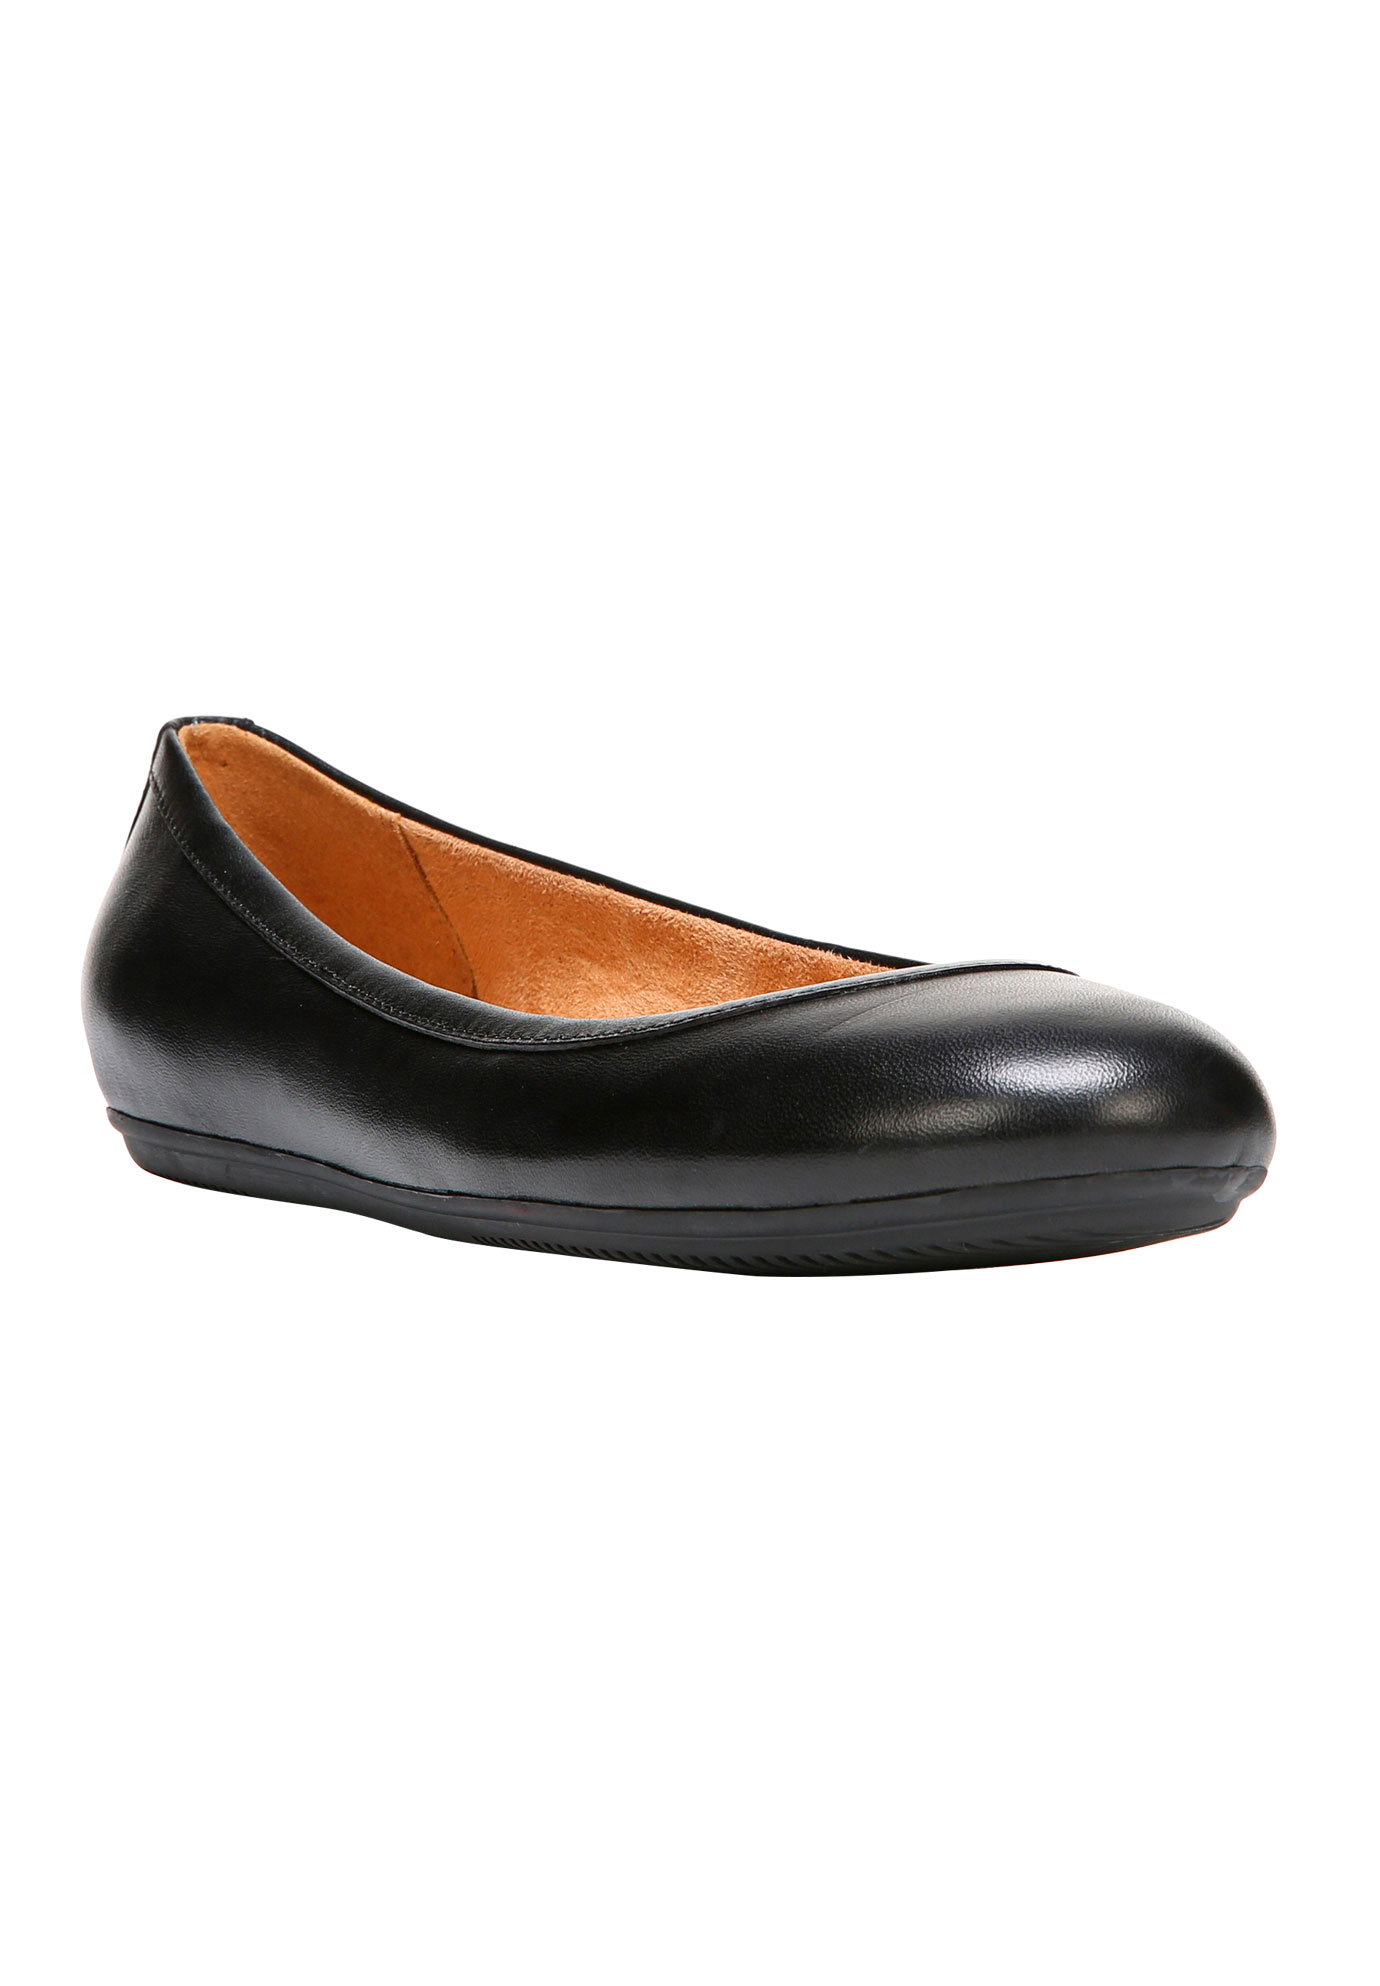 Brittany Flats by Naturalizer